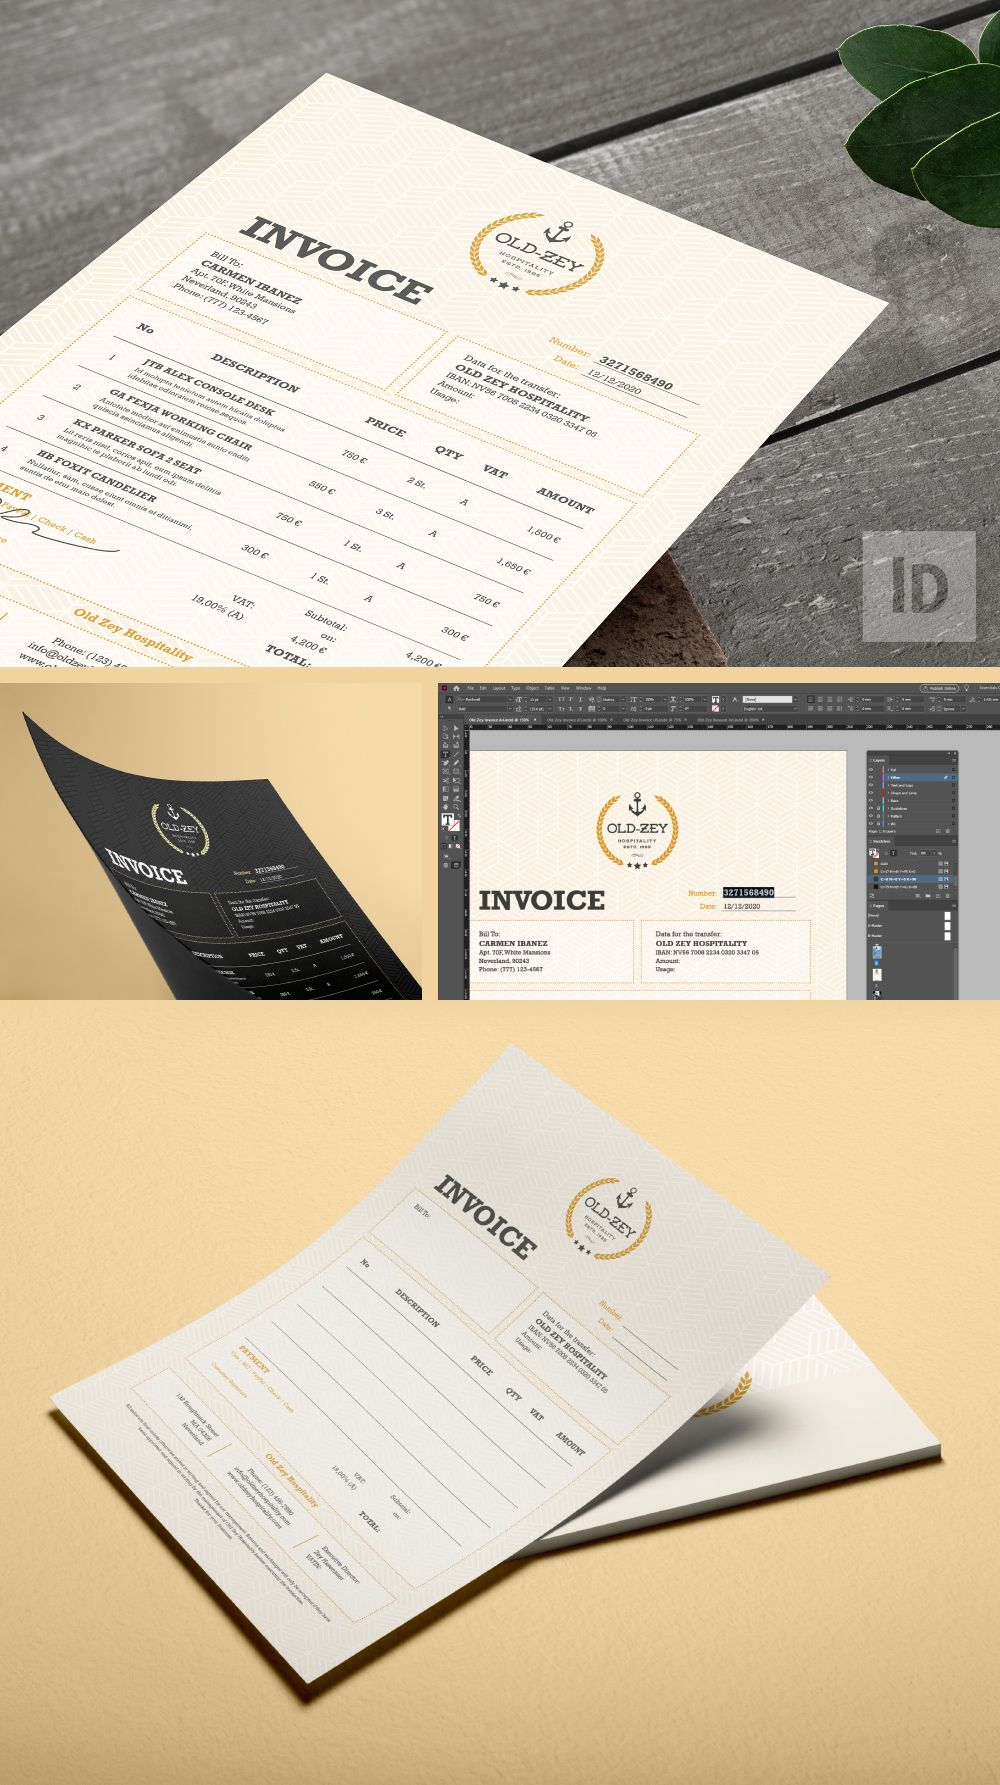 Have you ever thought a stationery that can be printed and archived as digital format at the same time? Because we have! Meet Old Zey Hospitality Invoice ID and Ai (separated item) | #accounting #bill #branding #buyer #commerce #commercial #creative #design #homefurnishing #hospitality #identity #indesign #industrial #informational #invoice #marketing #paper #payment #printdesign #purchase #quotation #quotationtemplate #quotes #receipt #record #sales #stationery #studio #template #transaction